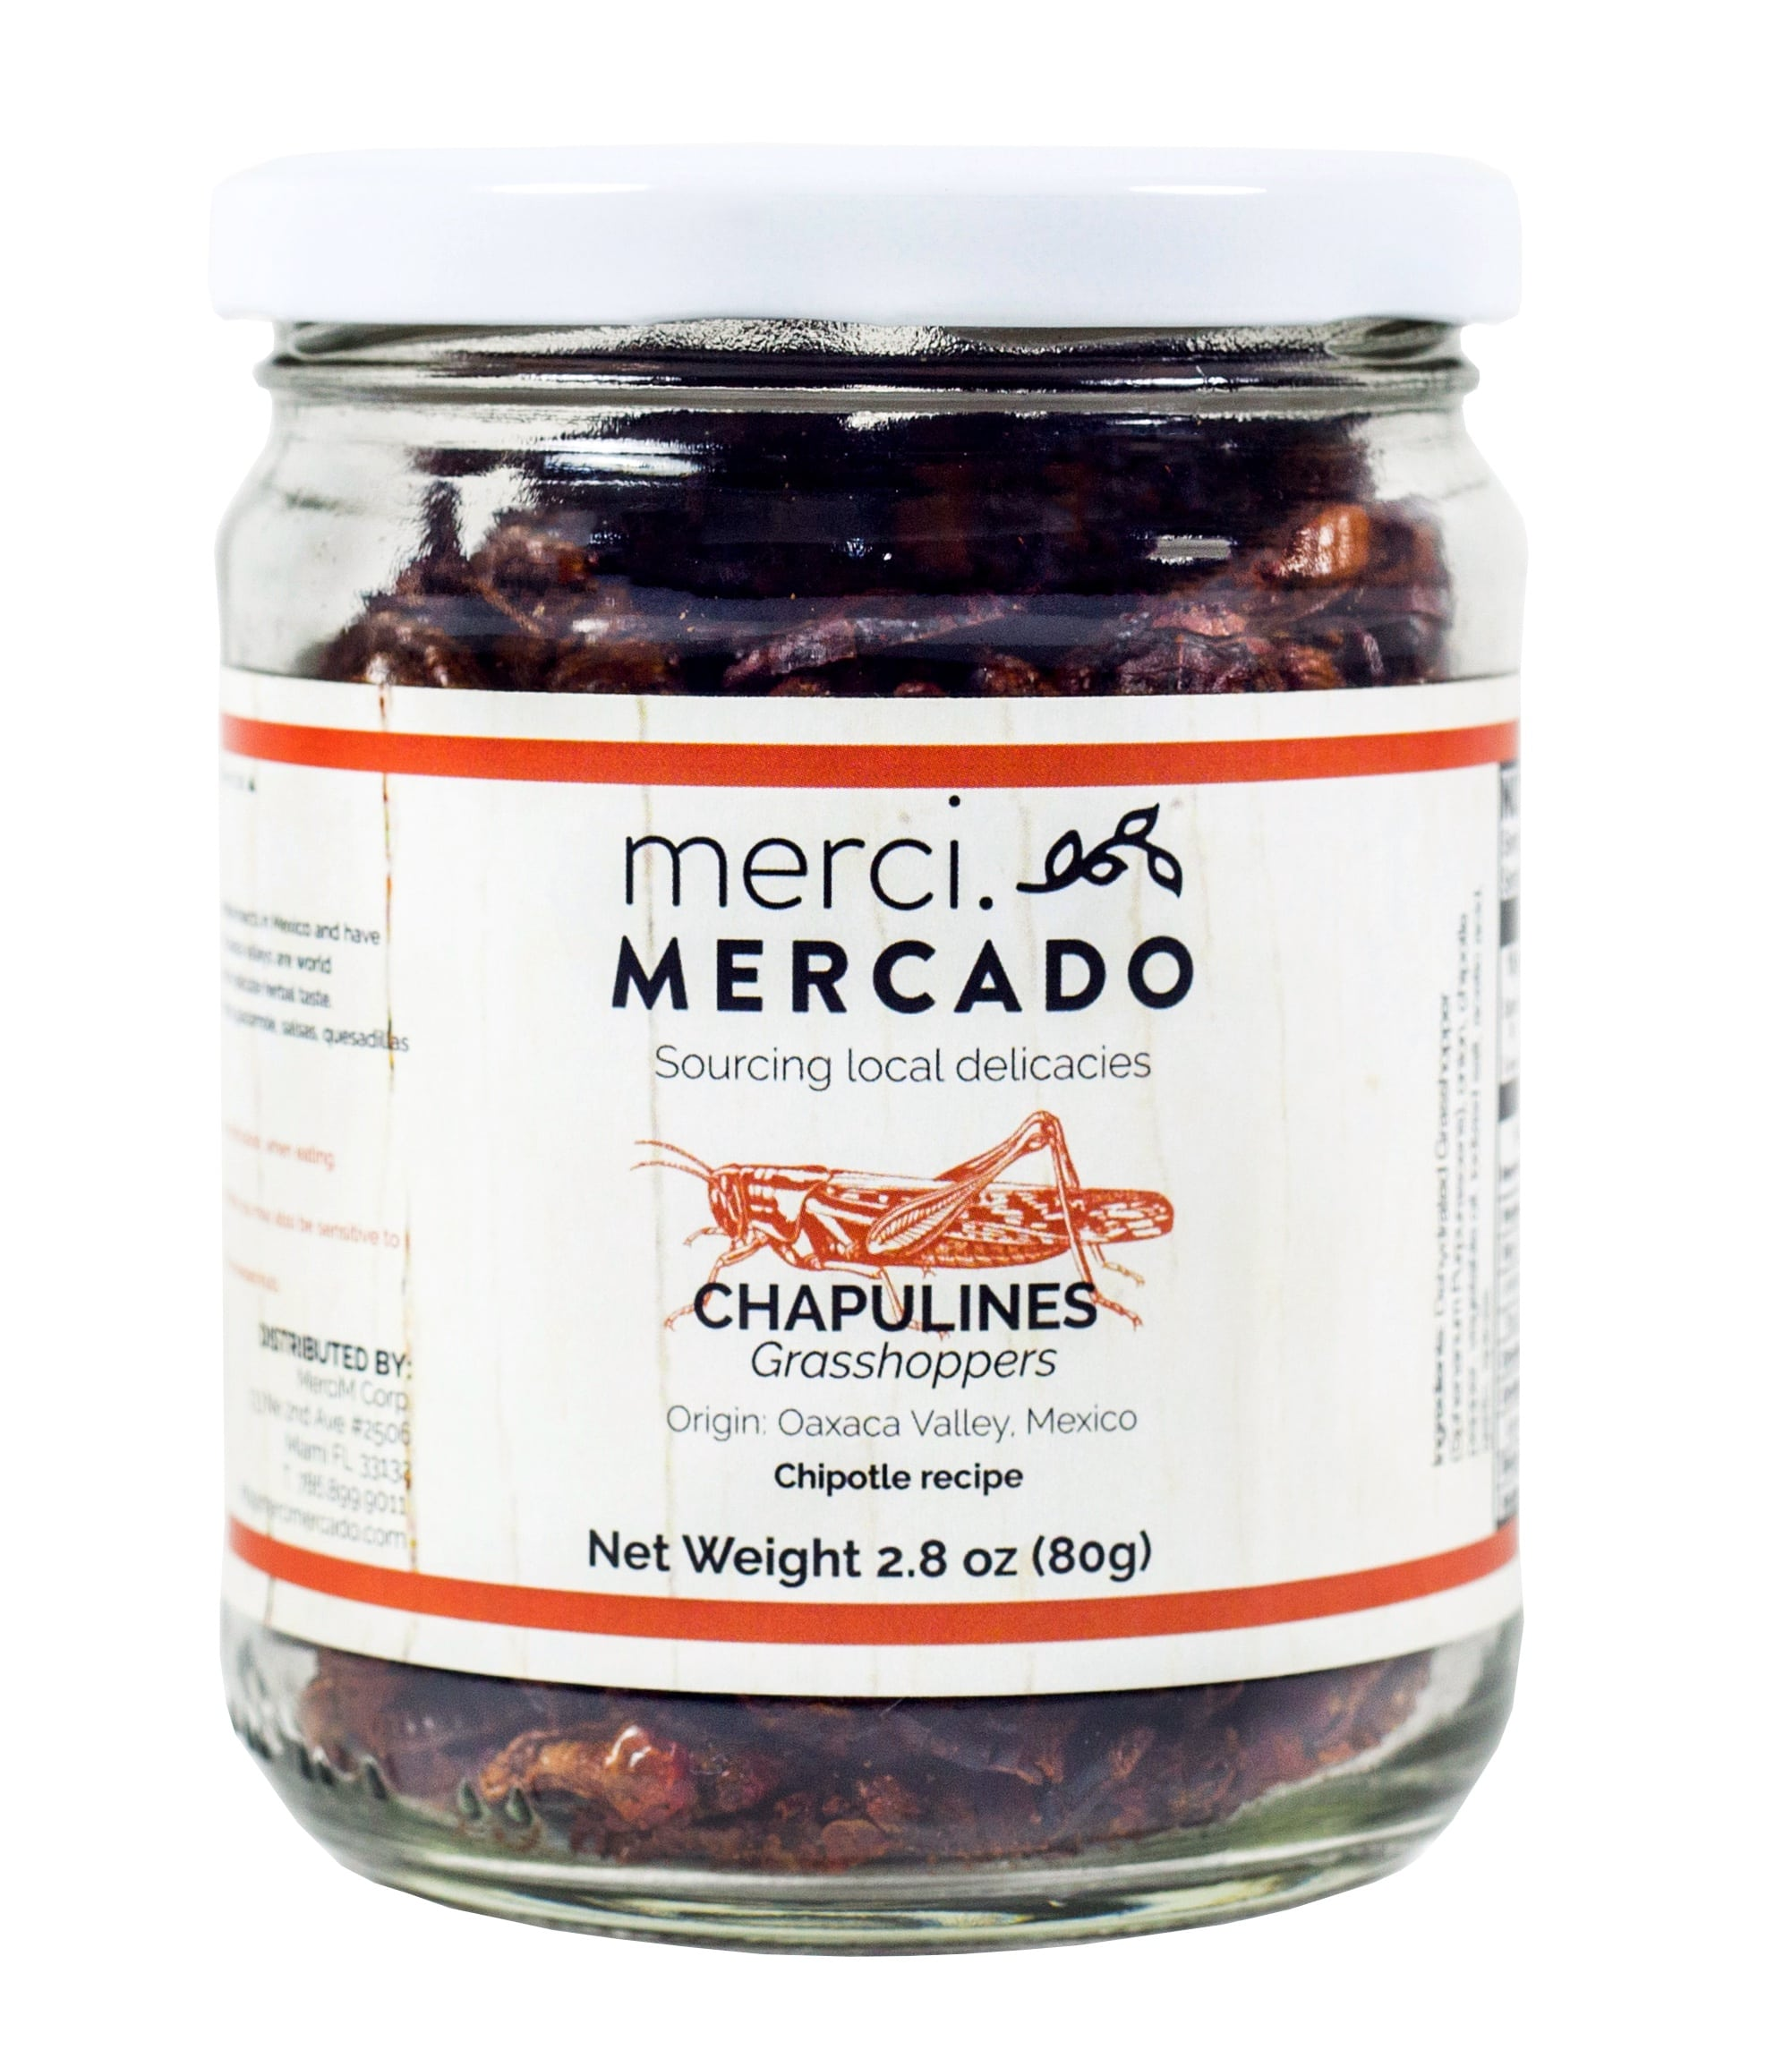 MerciMercado Chapulines Chipotle Recipe 2.8 Oz